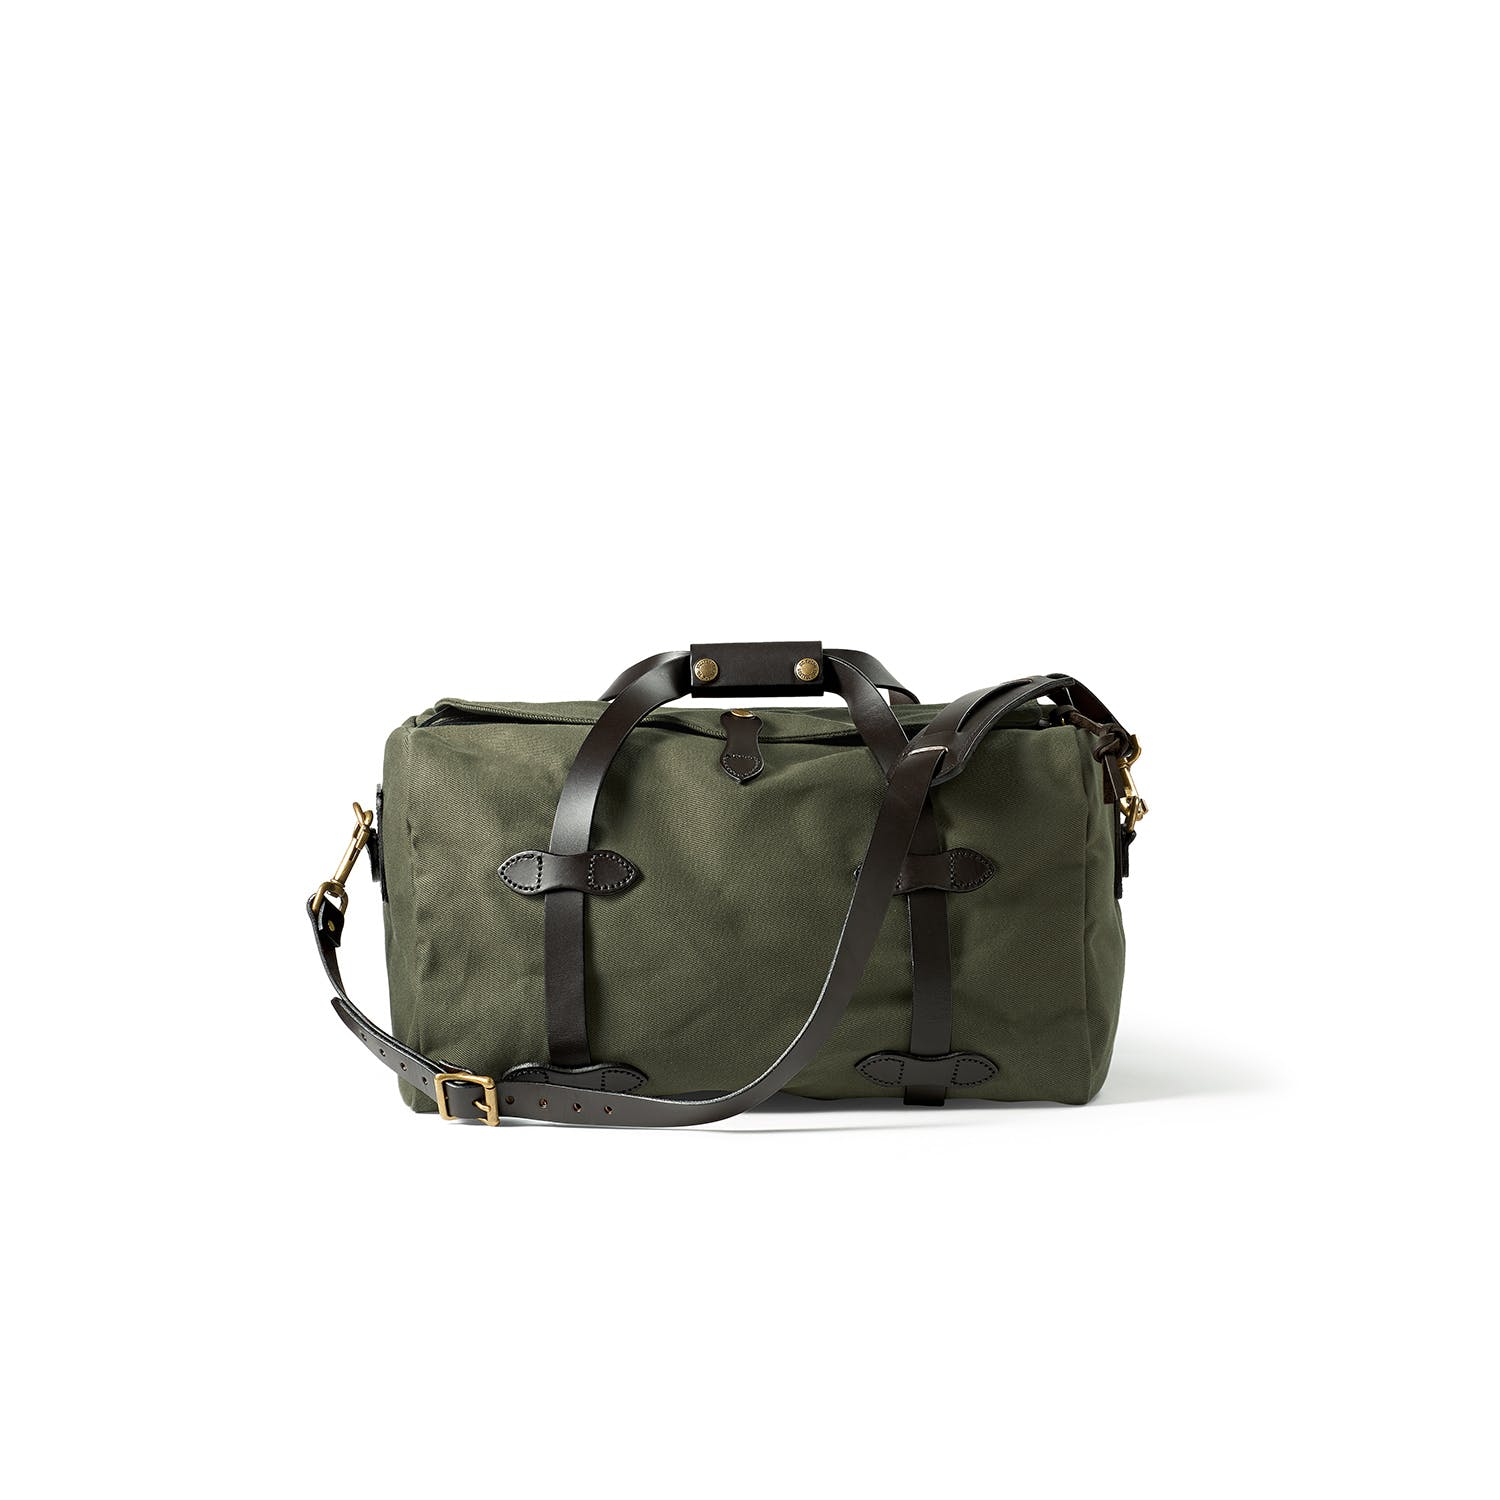 263b2648cf1d Filson Small Duffle Bag with Free S H — CampSaver